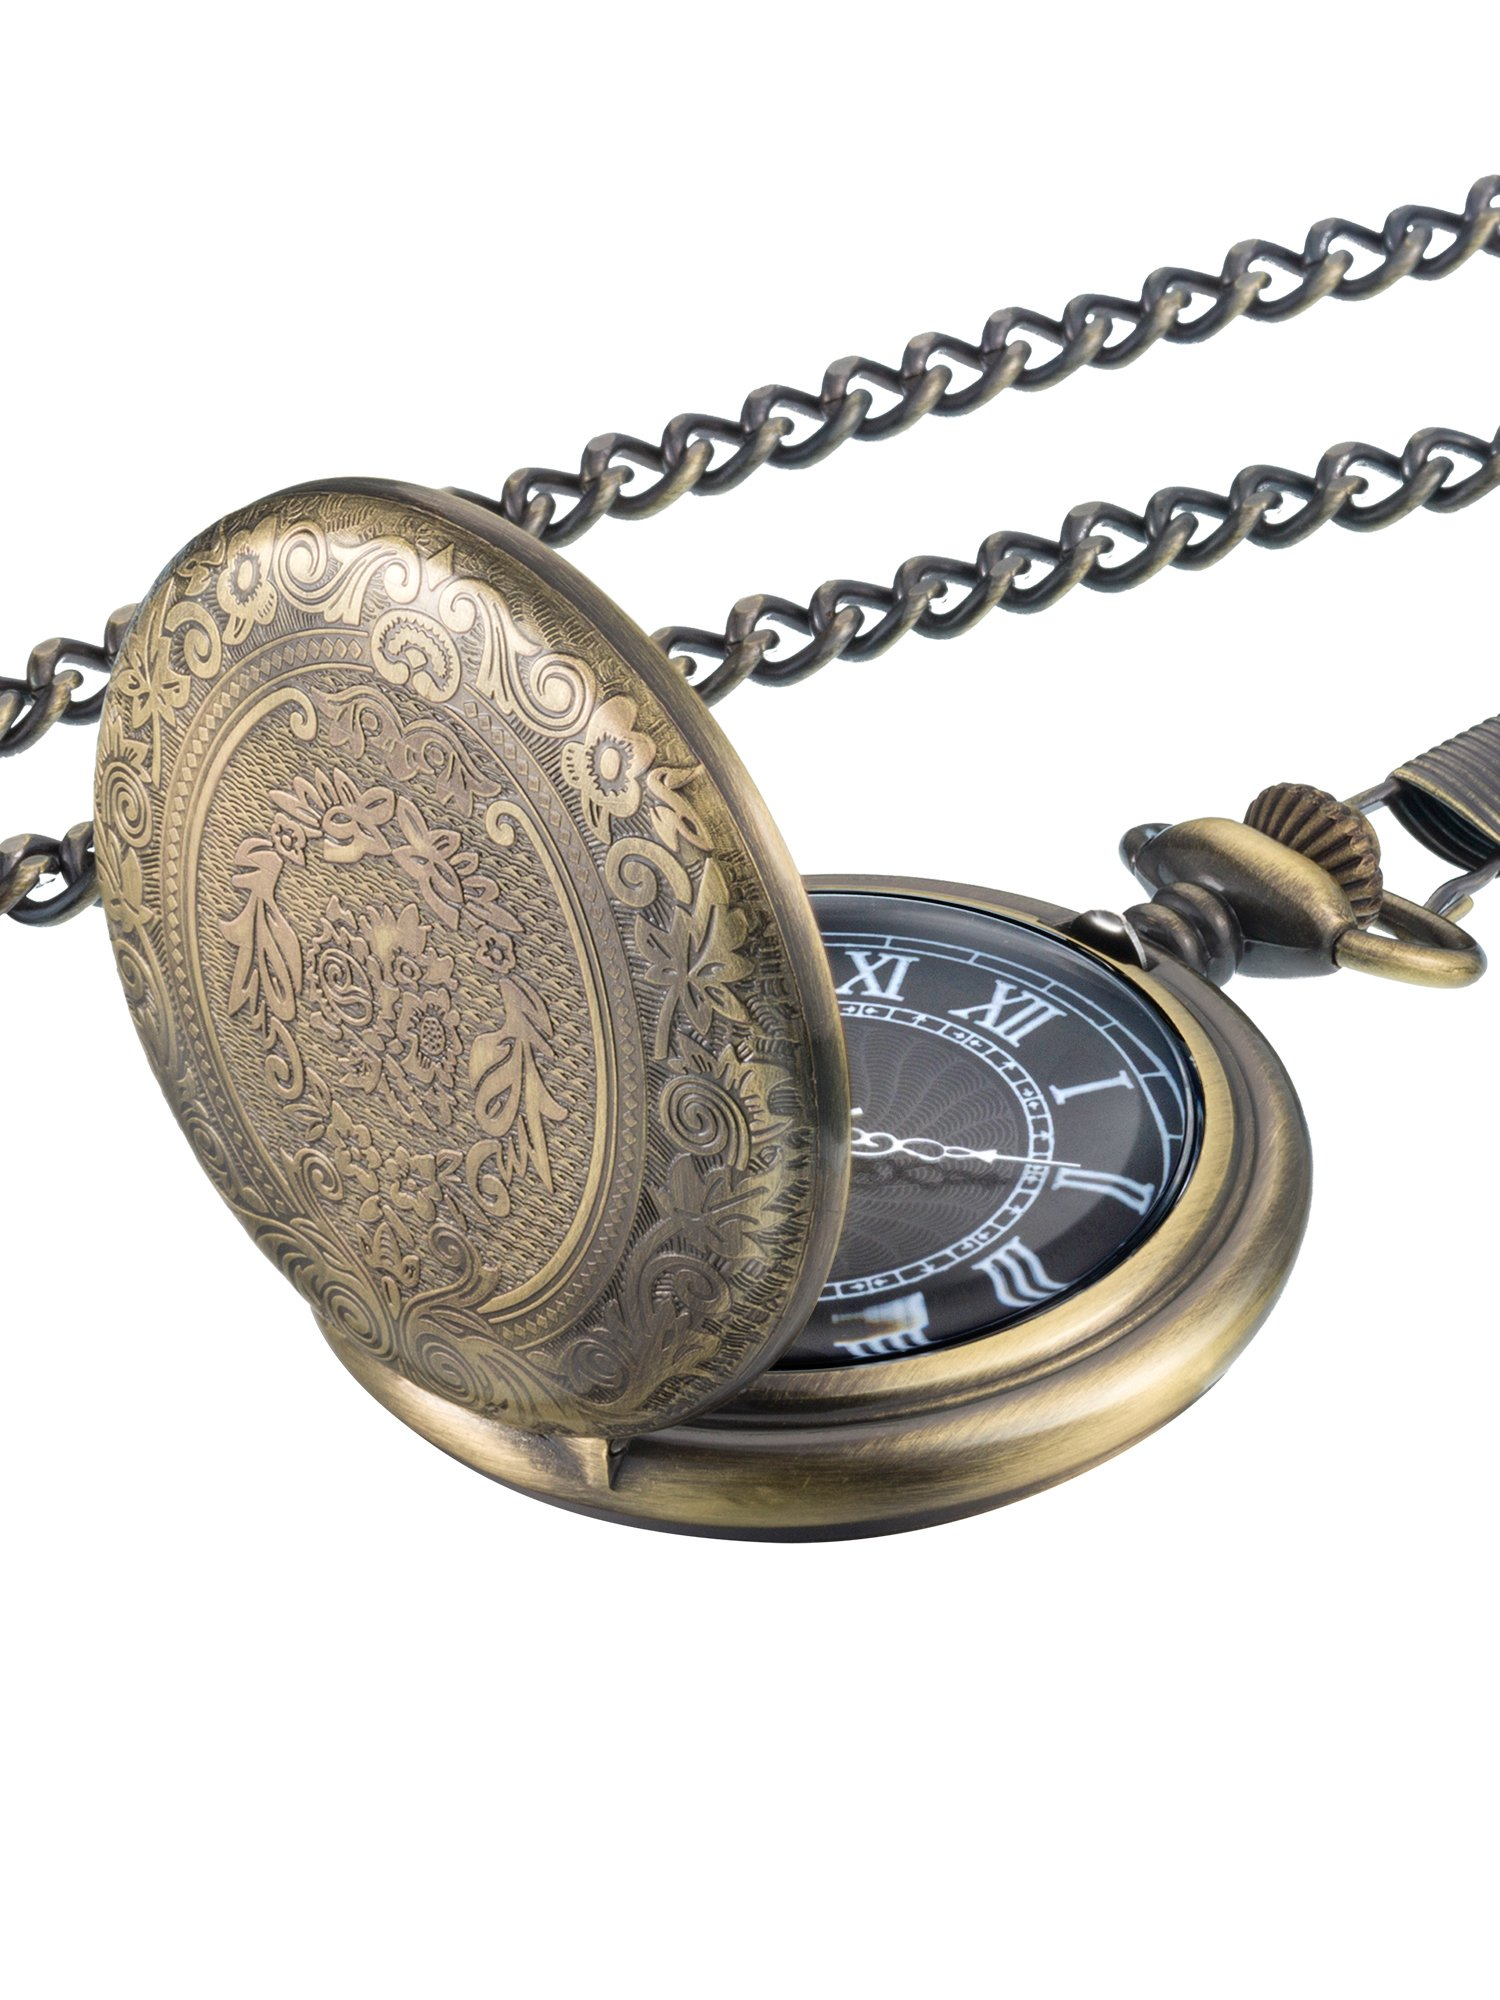 Hicarer Quartz Pocket Watch for Men with Black Dial and Chain (Bronze)